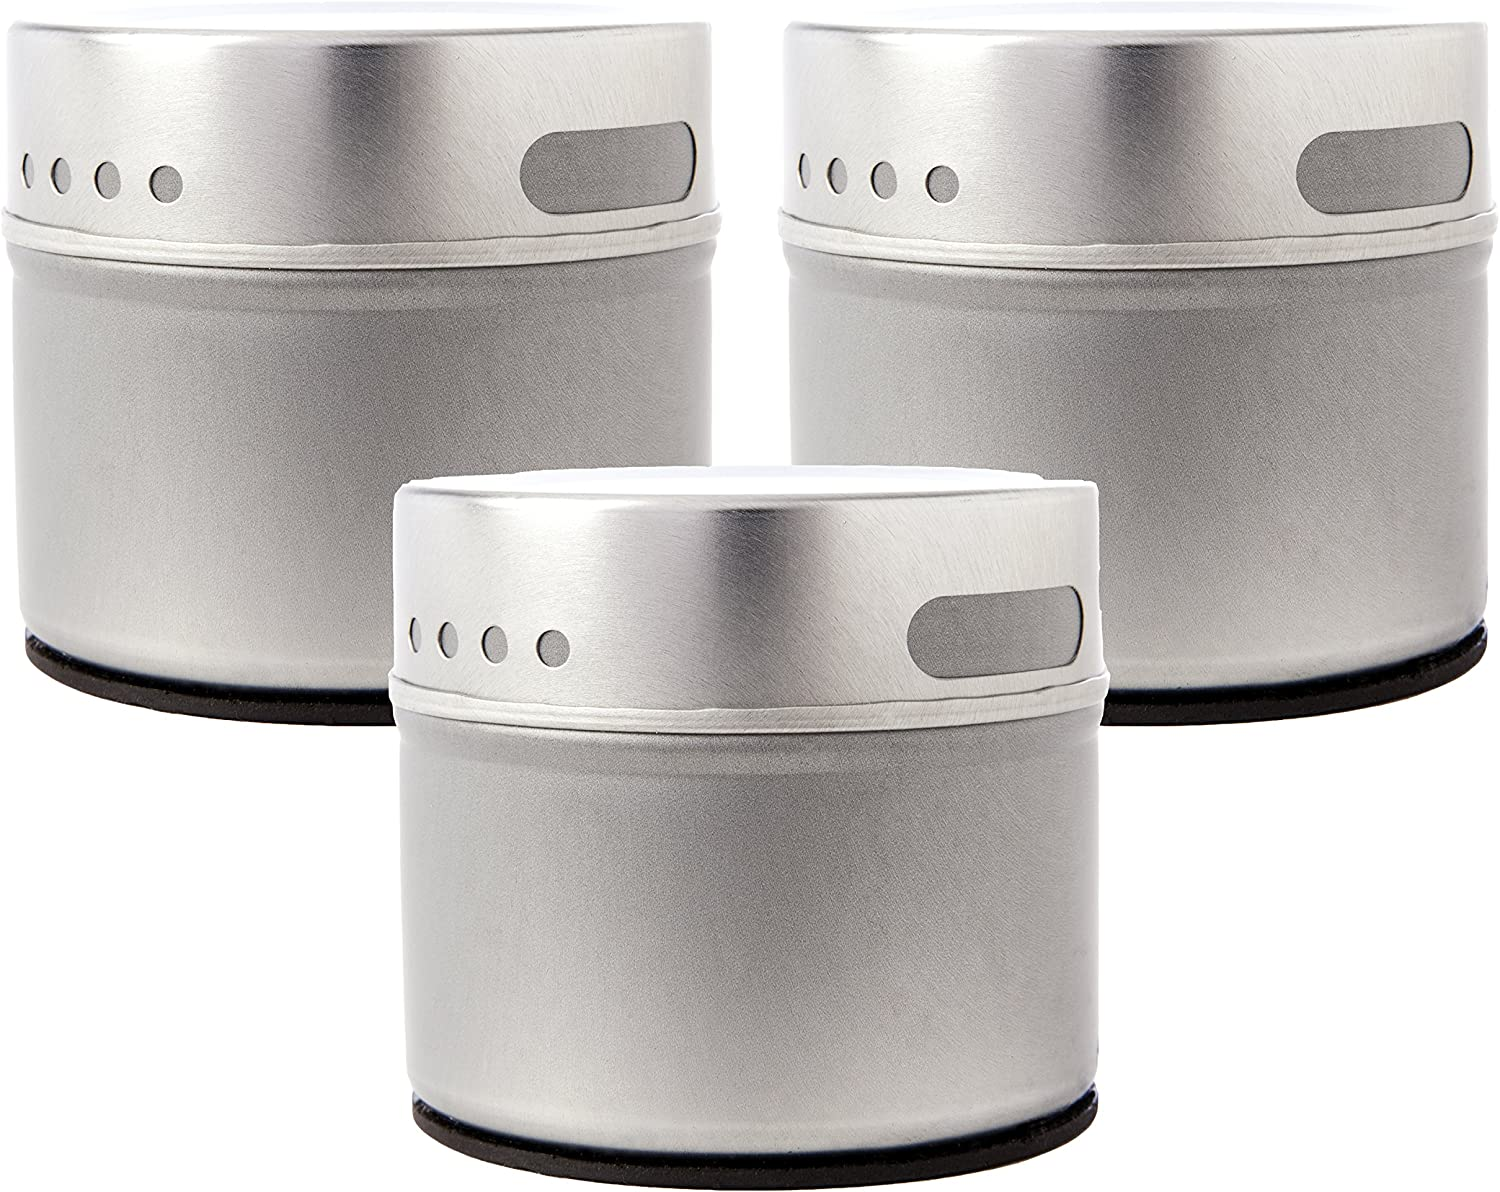 Set of 3 Magnetic Tins | Sift and Pour Lid | Spice Tins or Small Object Storage | 4oz. Volume | #P2